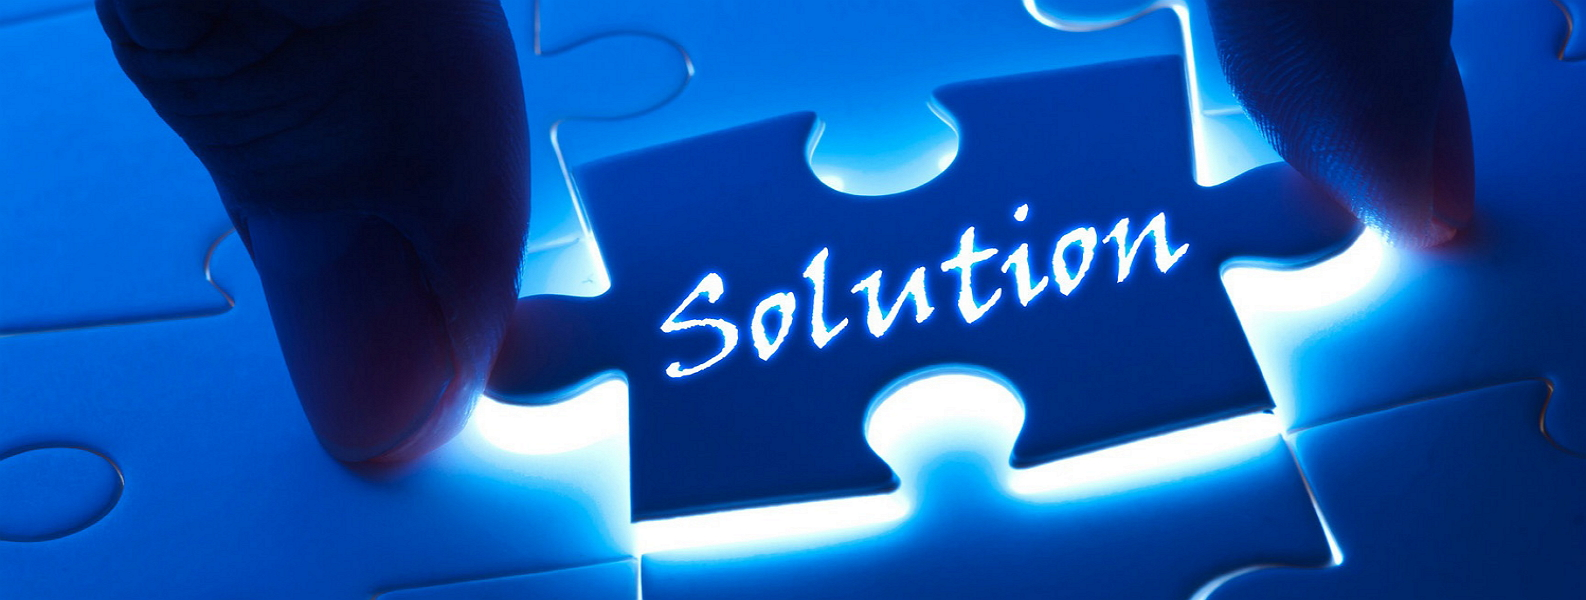 ITFiction can find a solution for your Business and Ideas